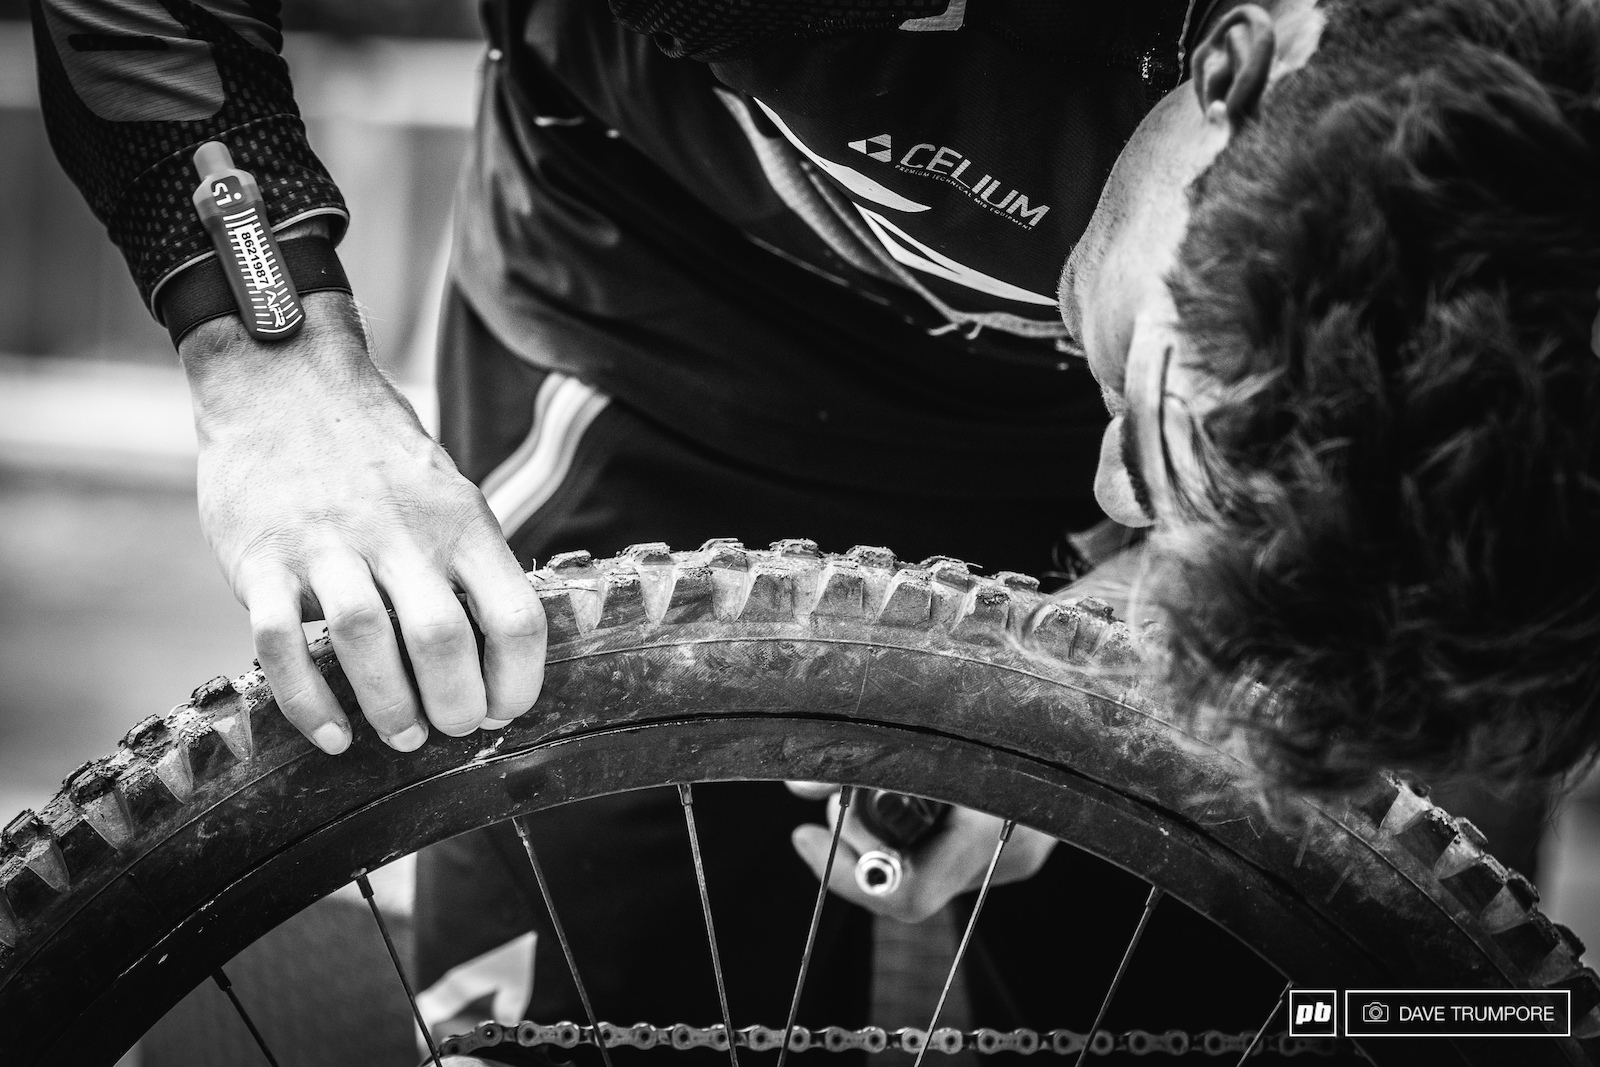 A dented rim and slow leak slowed Adrien Dailly down on stage 2 and he finished the day twenty two seconds back in 7th.